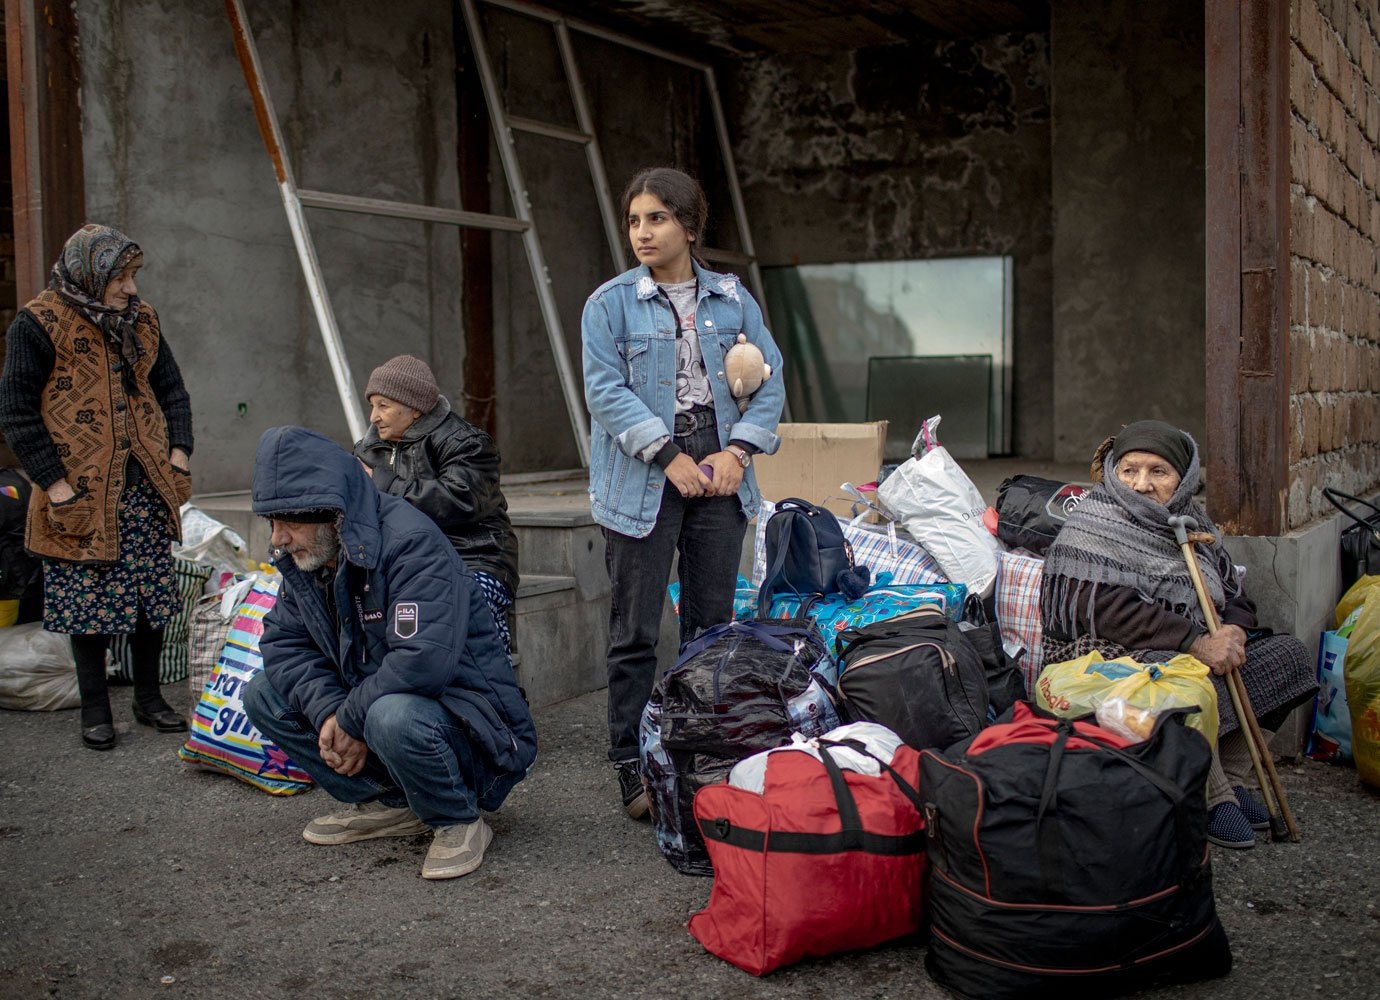 'People told me this wasn't a job for women': photojournalist Anush Babajanyan on documenting the Nagorno-Karabakh conflict